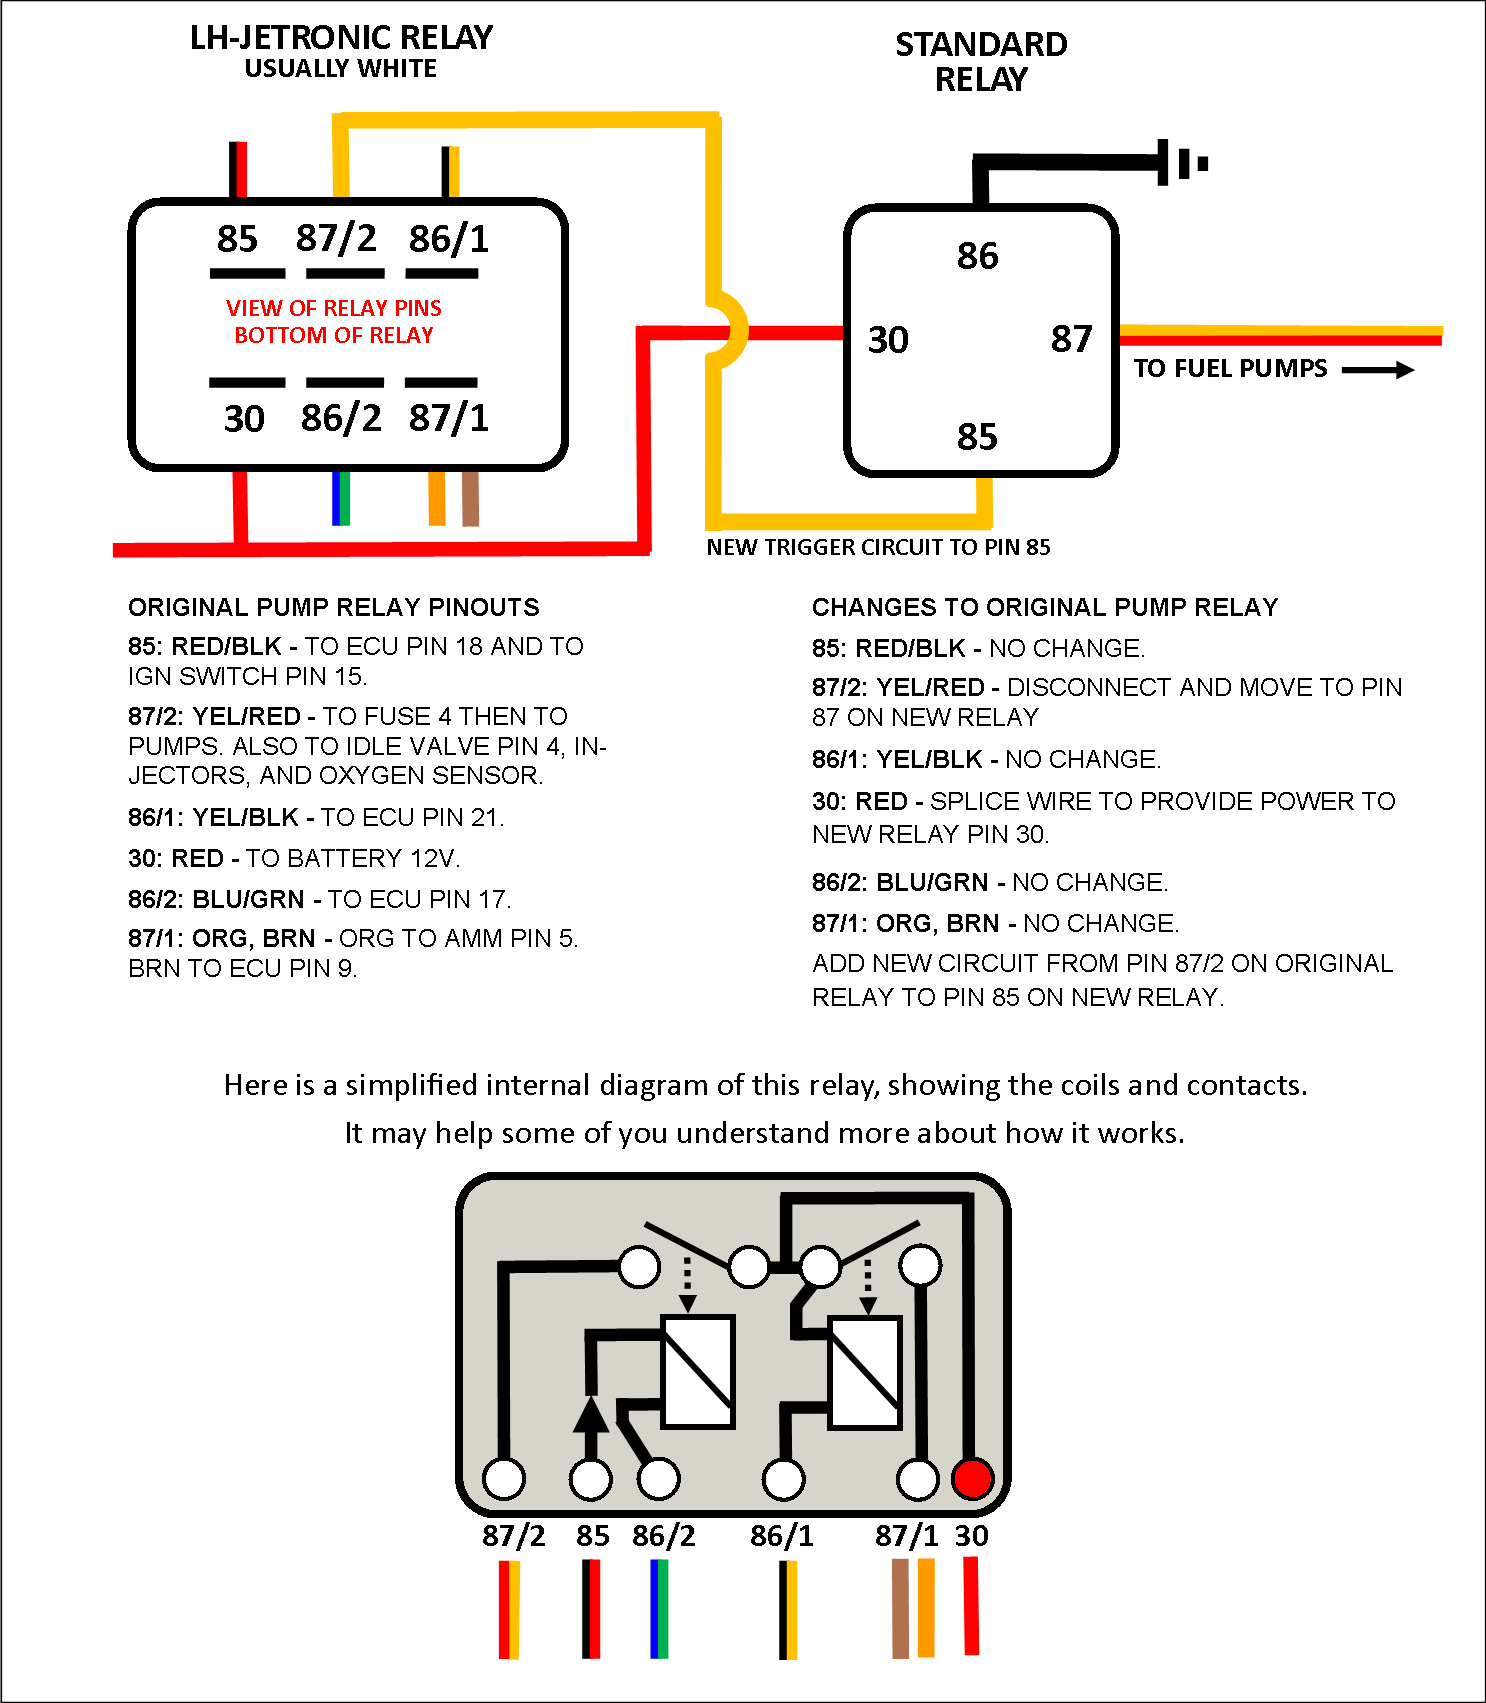 1991 240 Volvo Fuel Pump Wiring Diagram - Wiring Diagram Replace  seek-classroom - seek-classroom.miramontiseo.it | Volvo 240 Fuel Pump Wiring Diagram |  | seek-classroom.miramontiseo.it